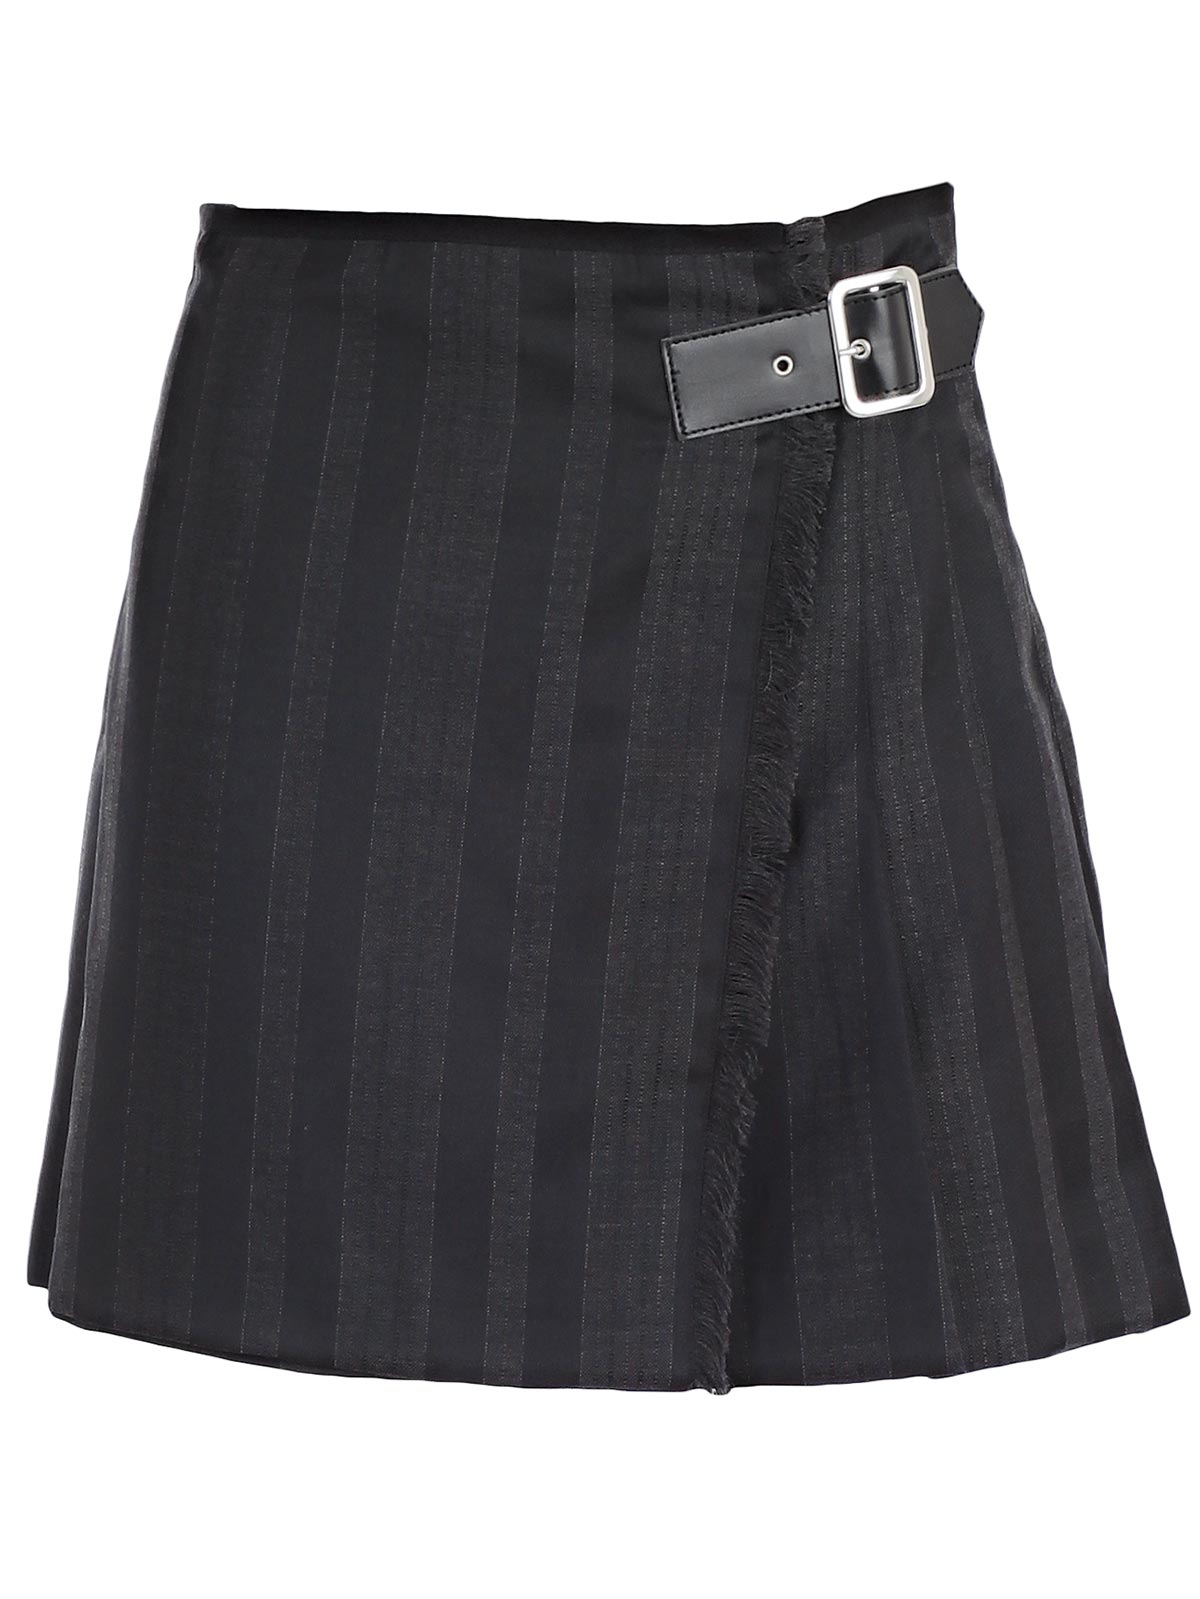 Picture of Mcq Alexander Mcqueen Skirt